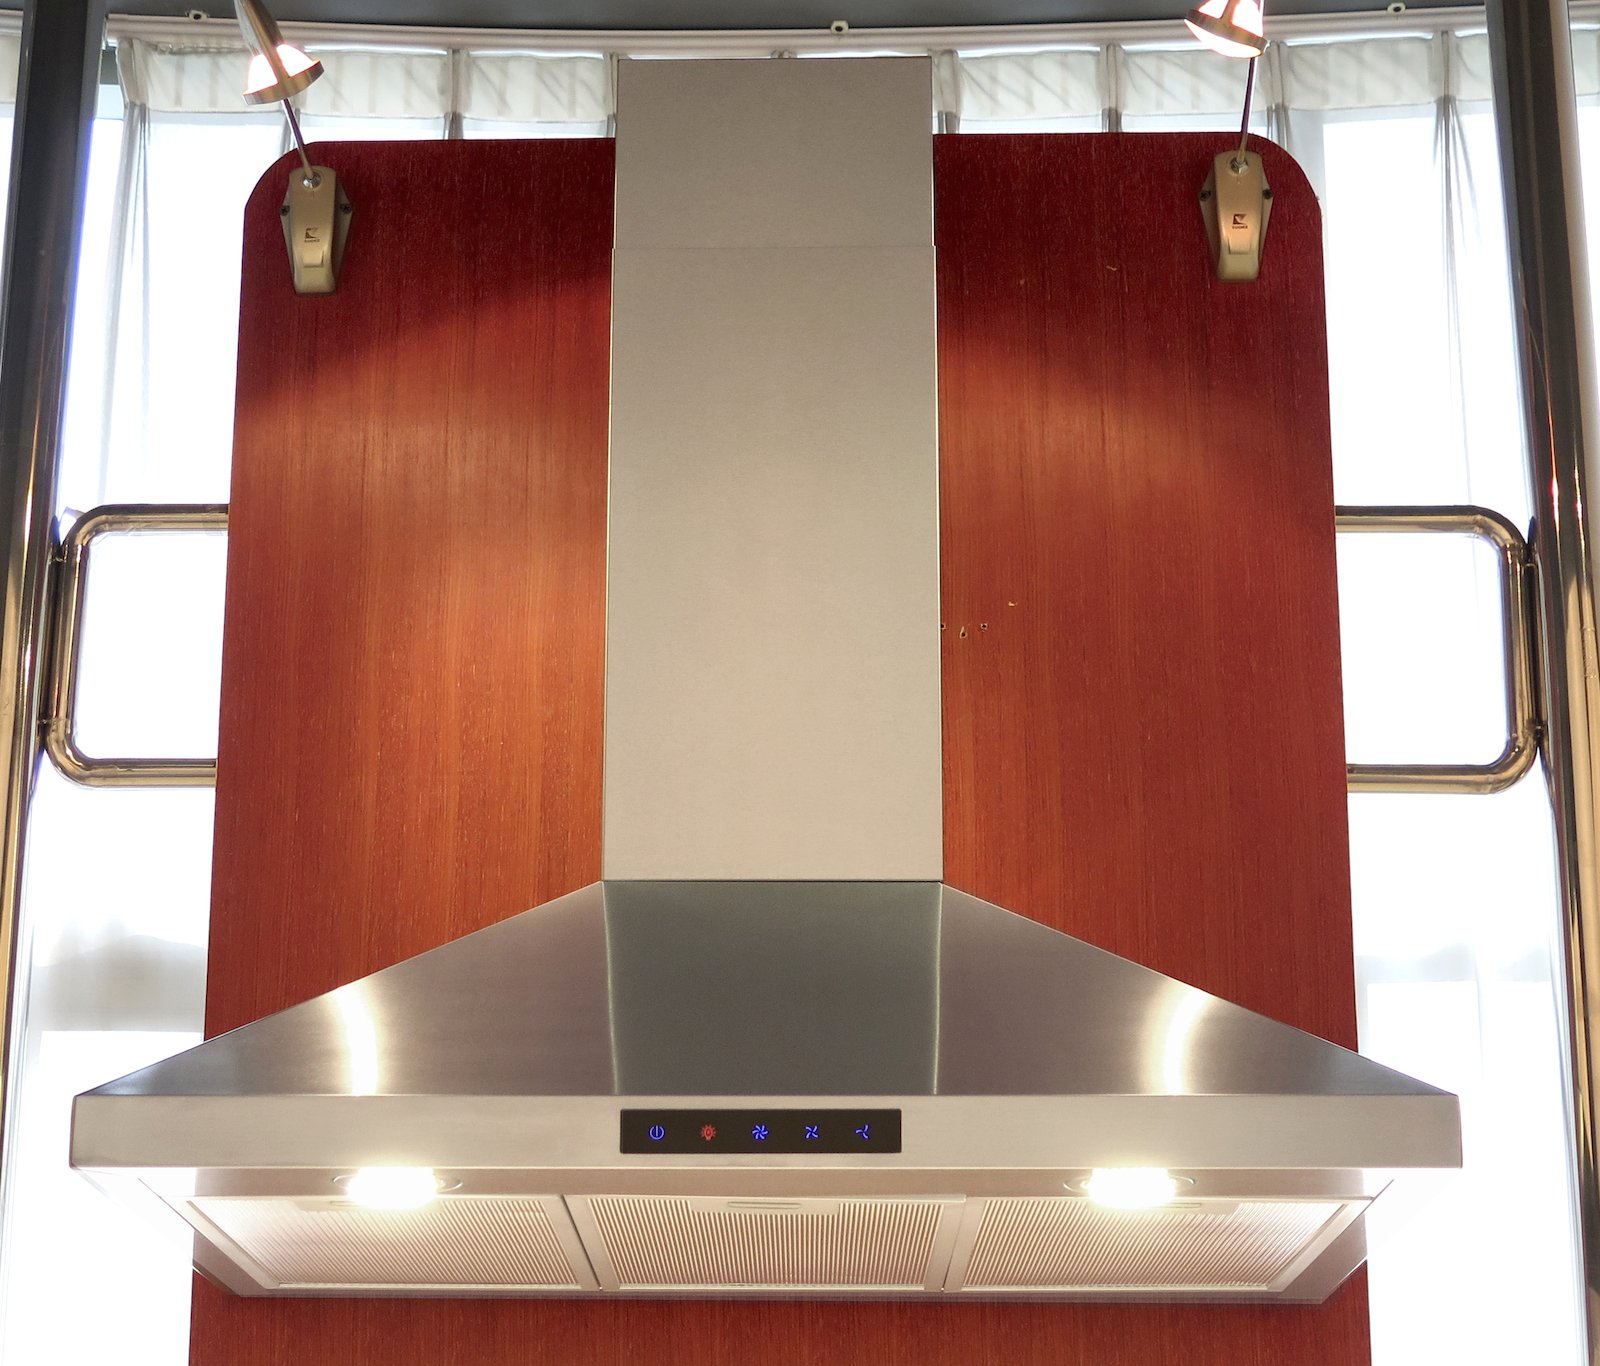 Kitchen Bath Collection STL75-LED Stainless Steel Wall-Mounted Kitchen Range Hood with High-End LED Lights, 30'' by Kitchen Bath Collection (Image #3)